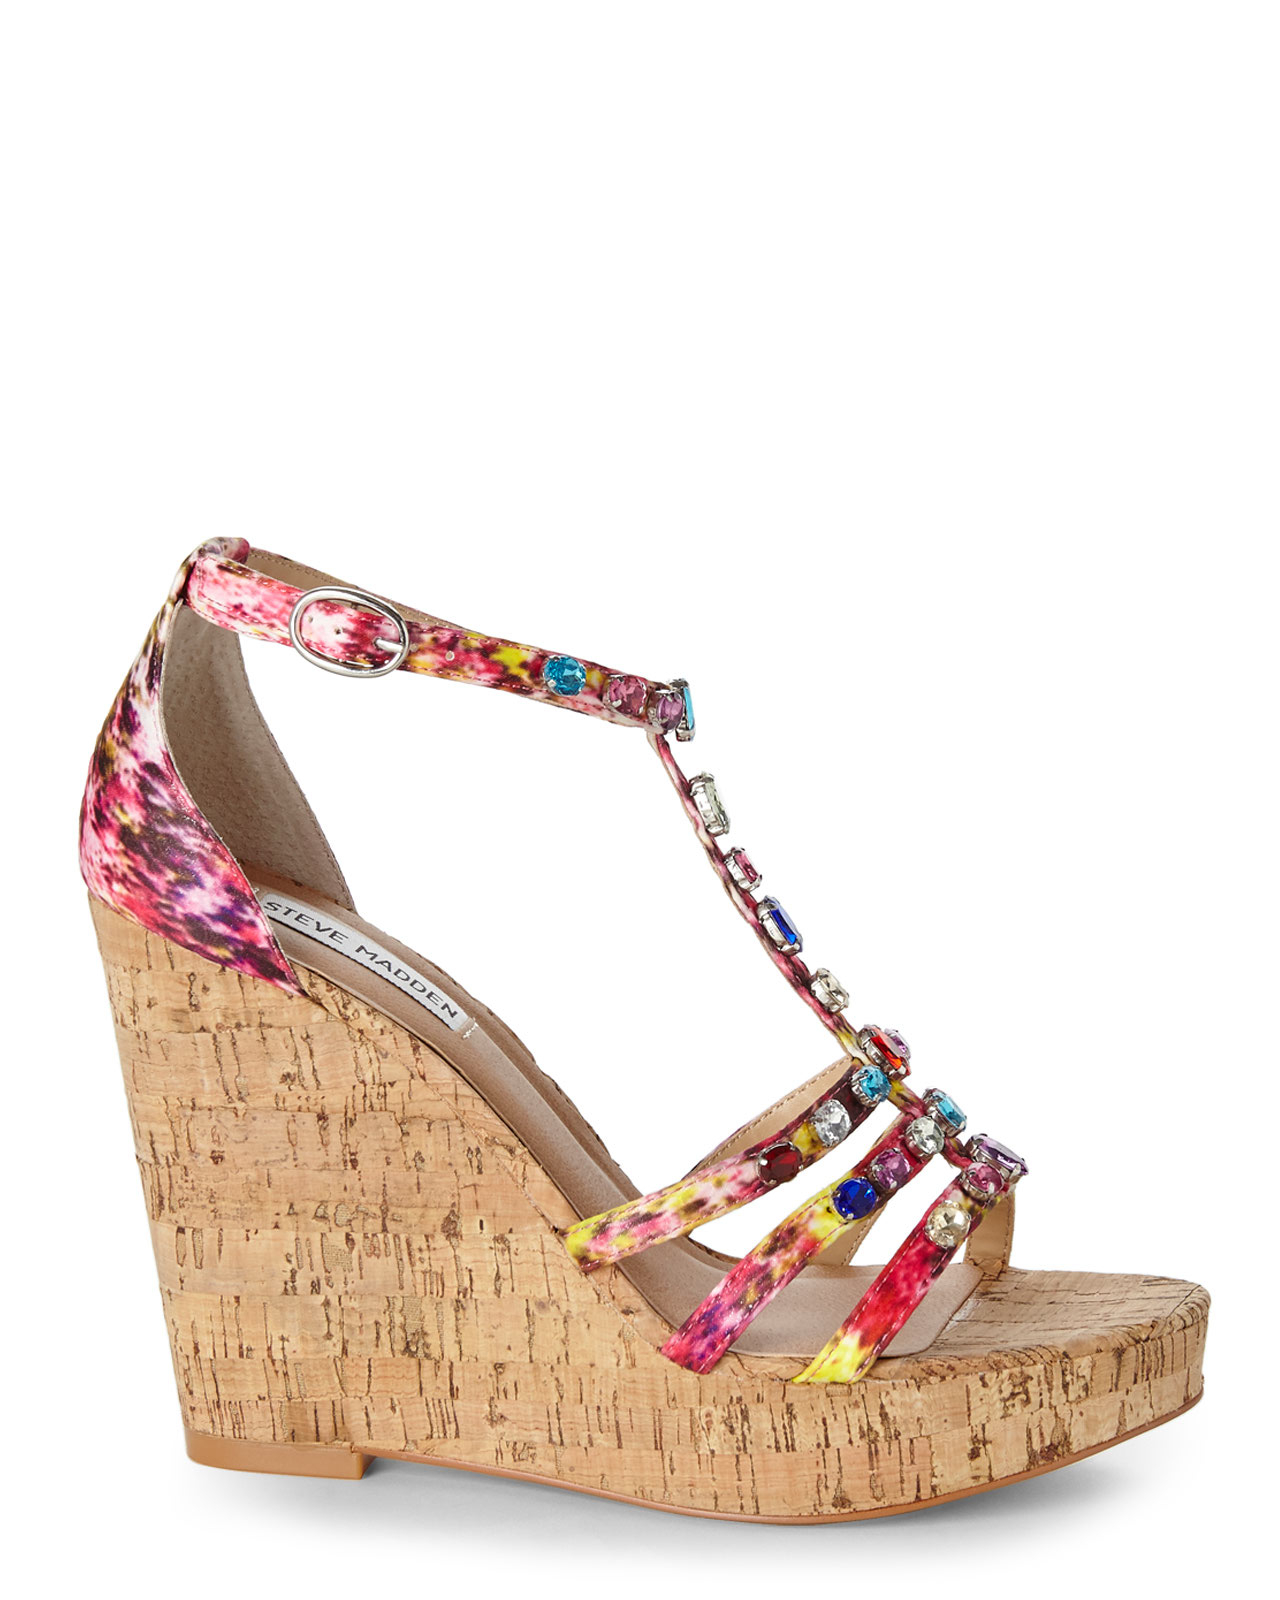 Steve madden Multicolor Faara Wedge Sandals | Lyst